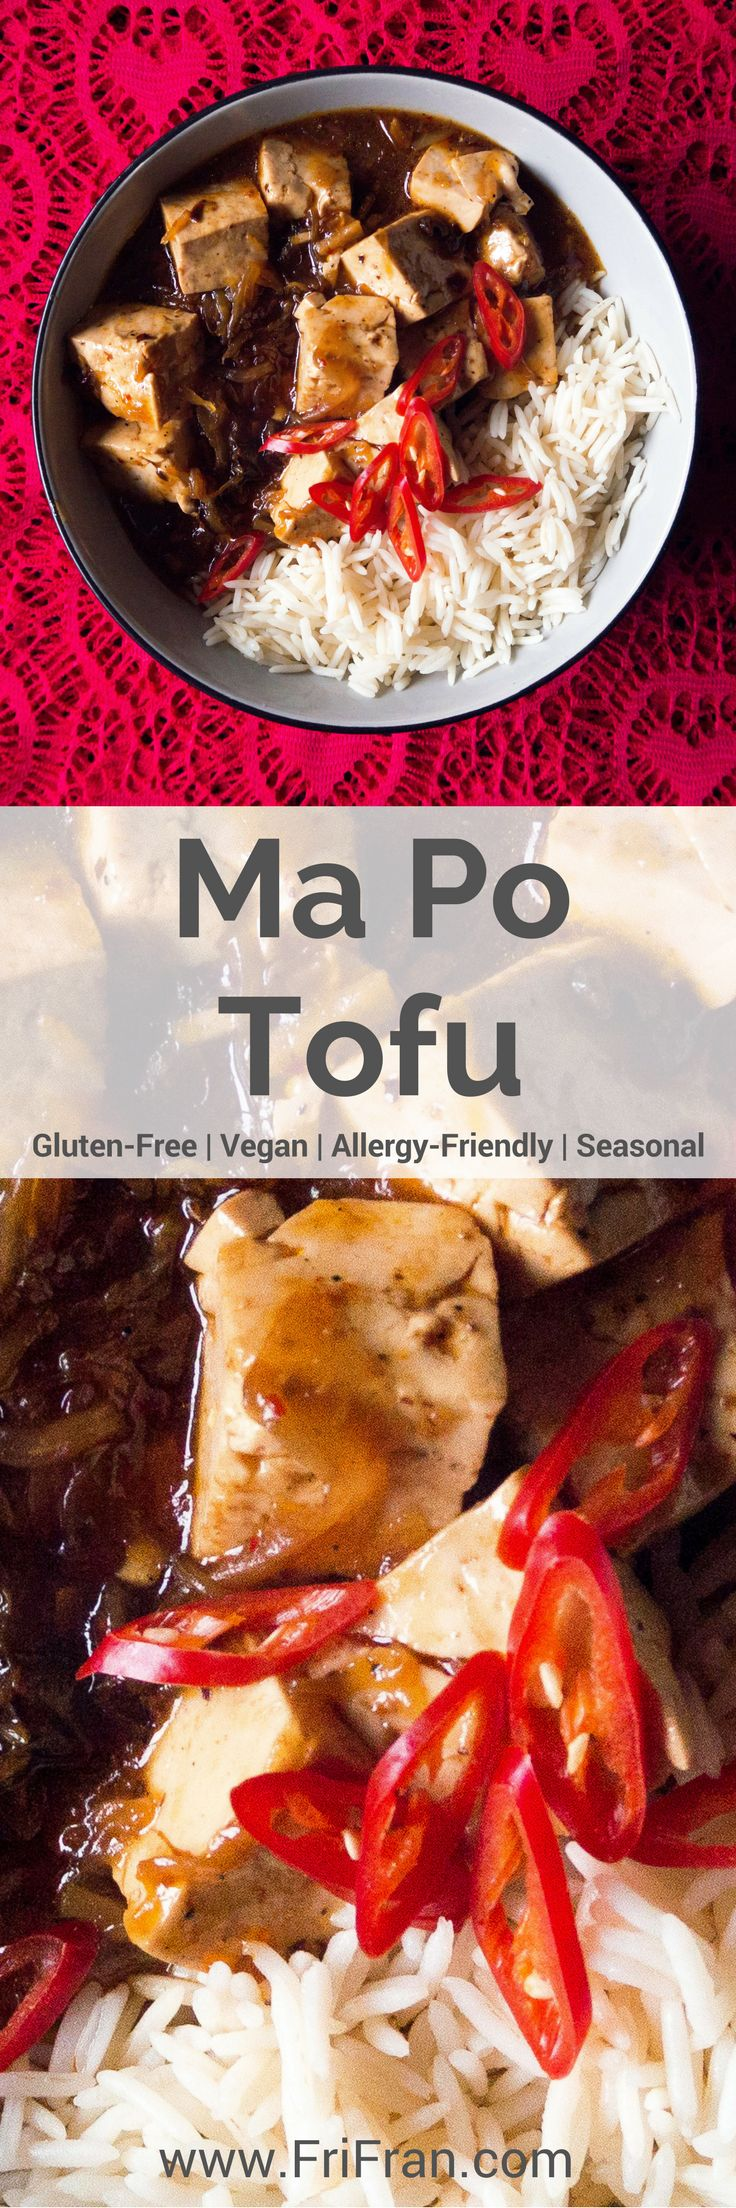 Ma Po Tofu is a dish from the Szechuan province of China. Szechuan peppercorns give a numbing, heat and with the chillies you get a warm, lingering heat. #GlutenFree #Vegan #GlutenFreeVegan #Tofu #MaPoTofu  #ChineseNewYear #AllergyFriendly #Seasonal #AlliumFree #CoconutFree #FriFran #GlutenFreeVegan